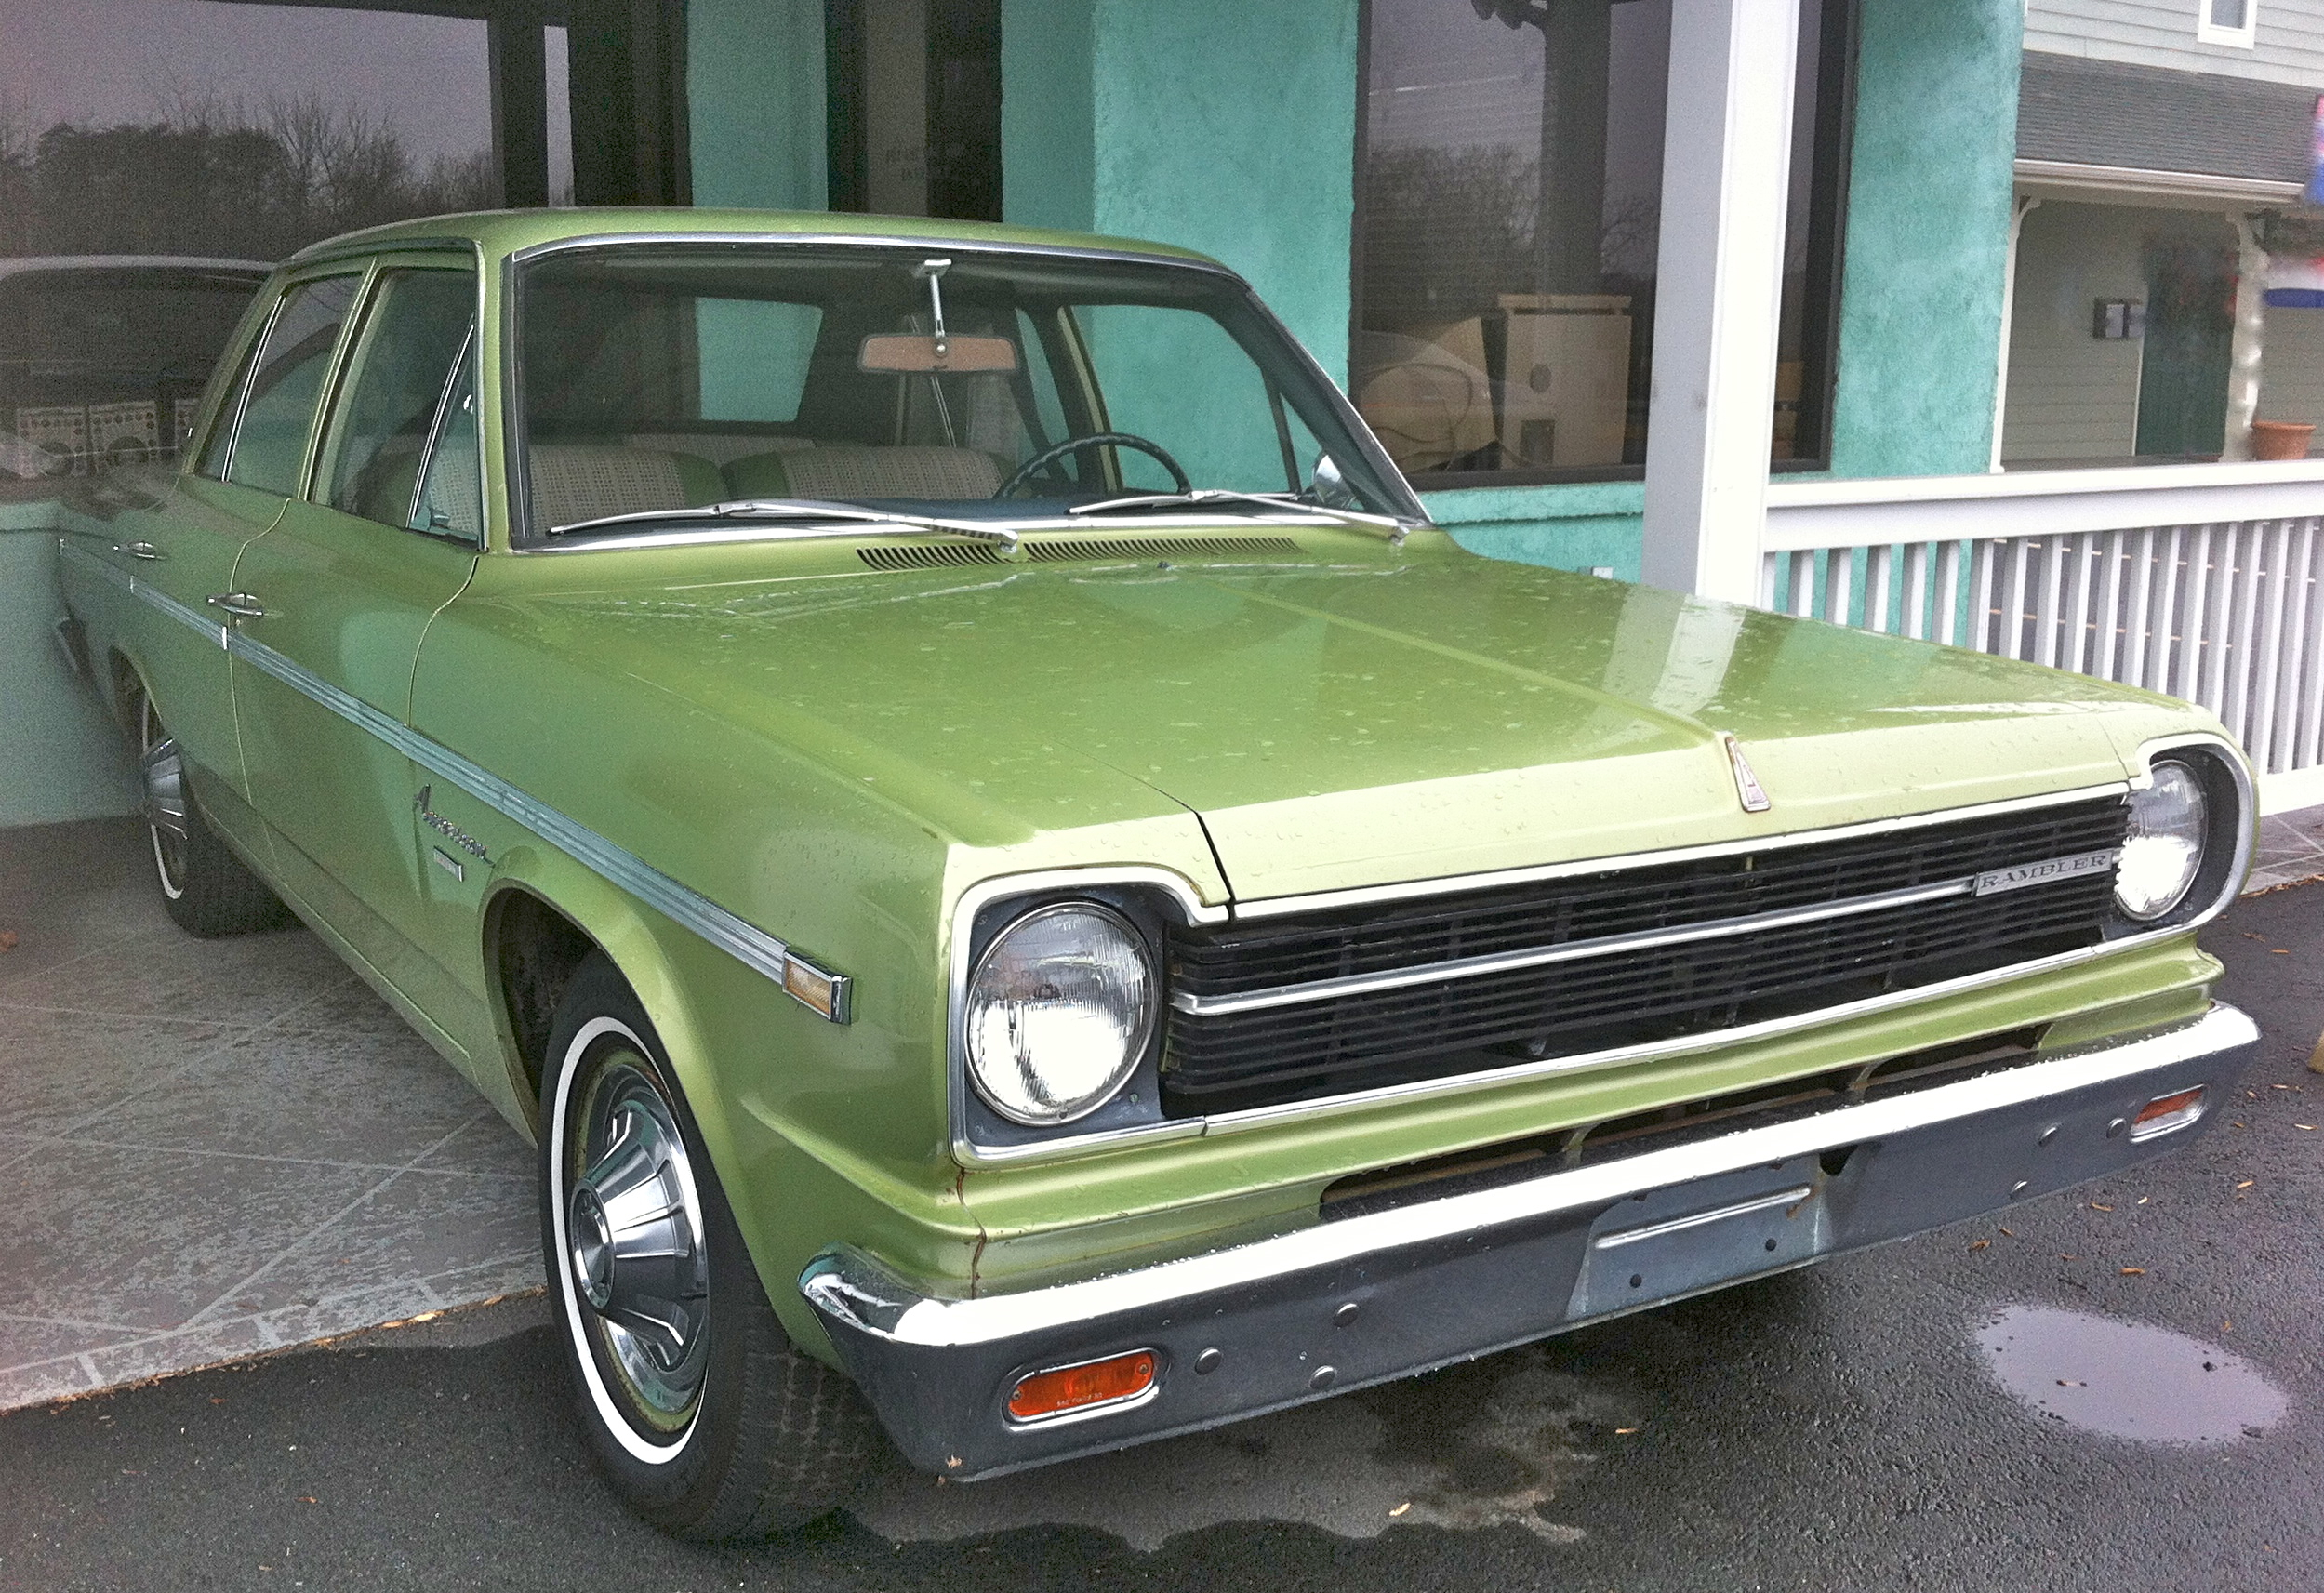 File1968 Rambler American 440 4 door sedan green